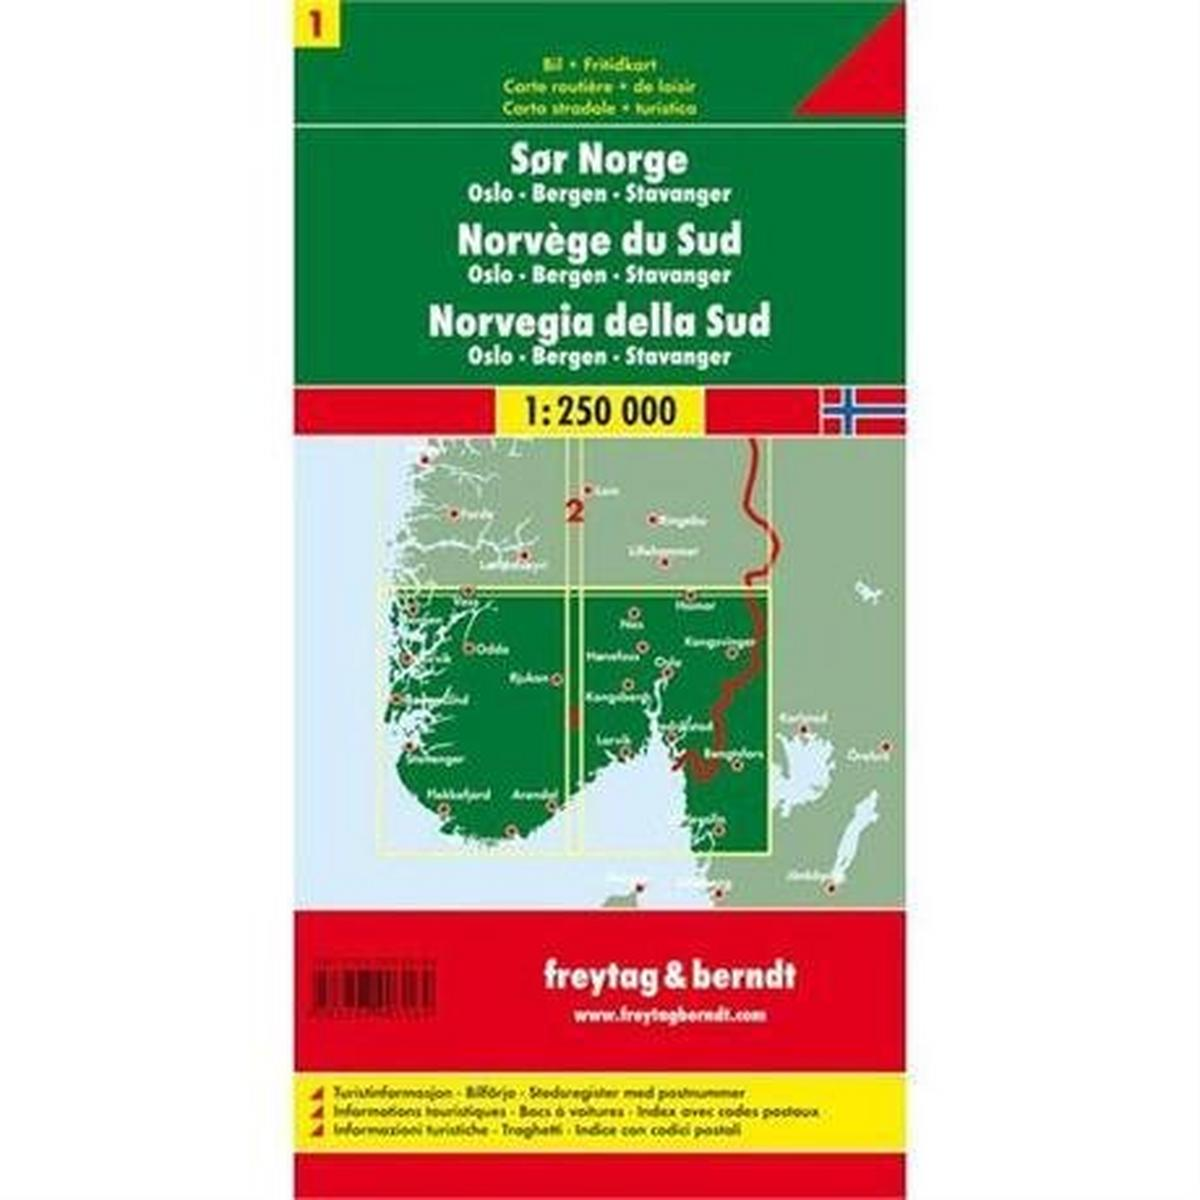 Miscellaneous Norway Map: South - Oslo - Bergen - Stavanger 1:250,000